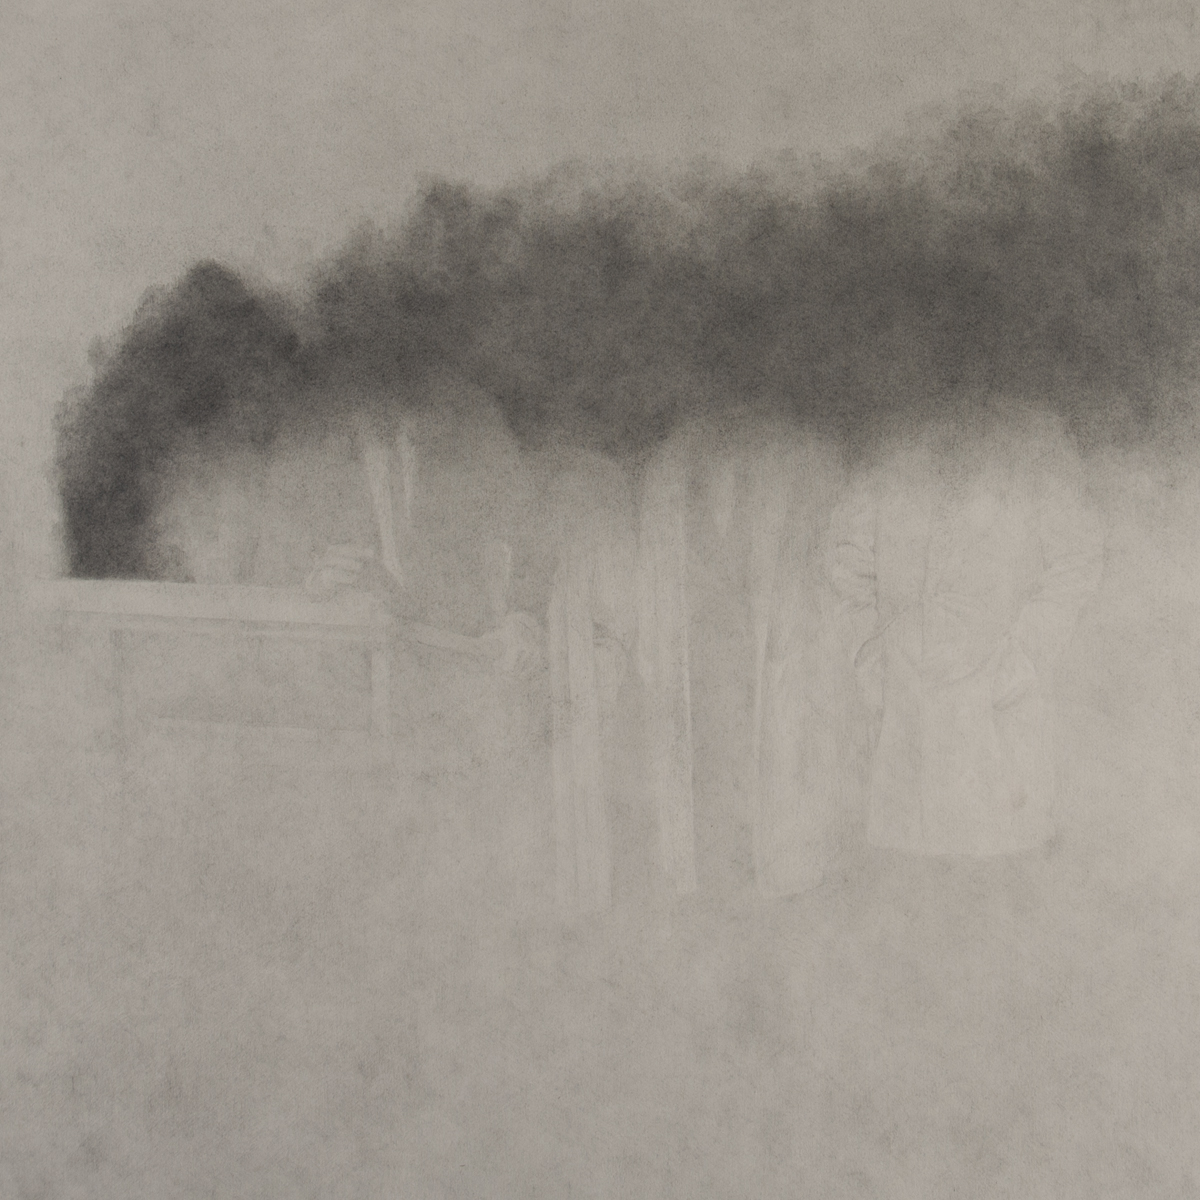 "Veiled   Graphite on Paper  21"" x 21""  2014"